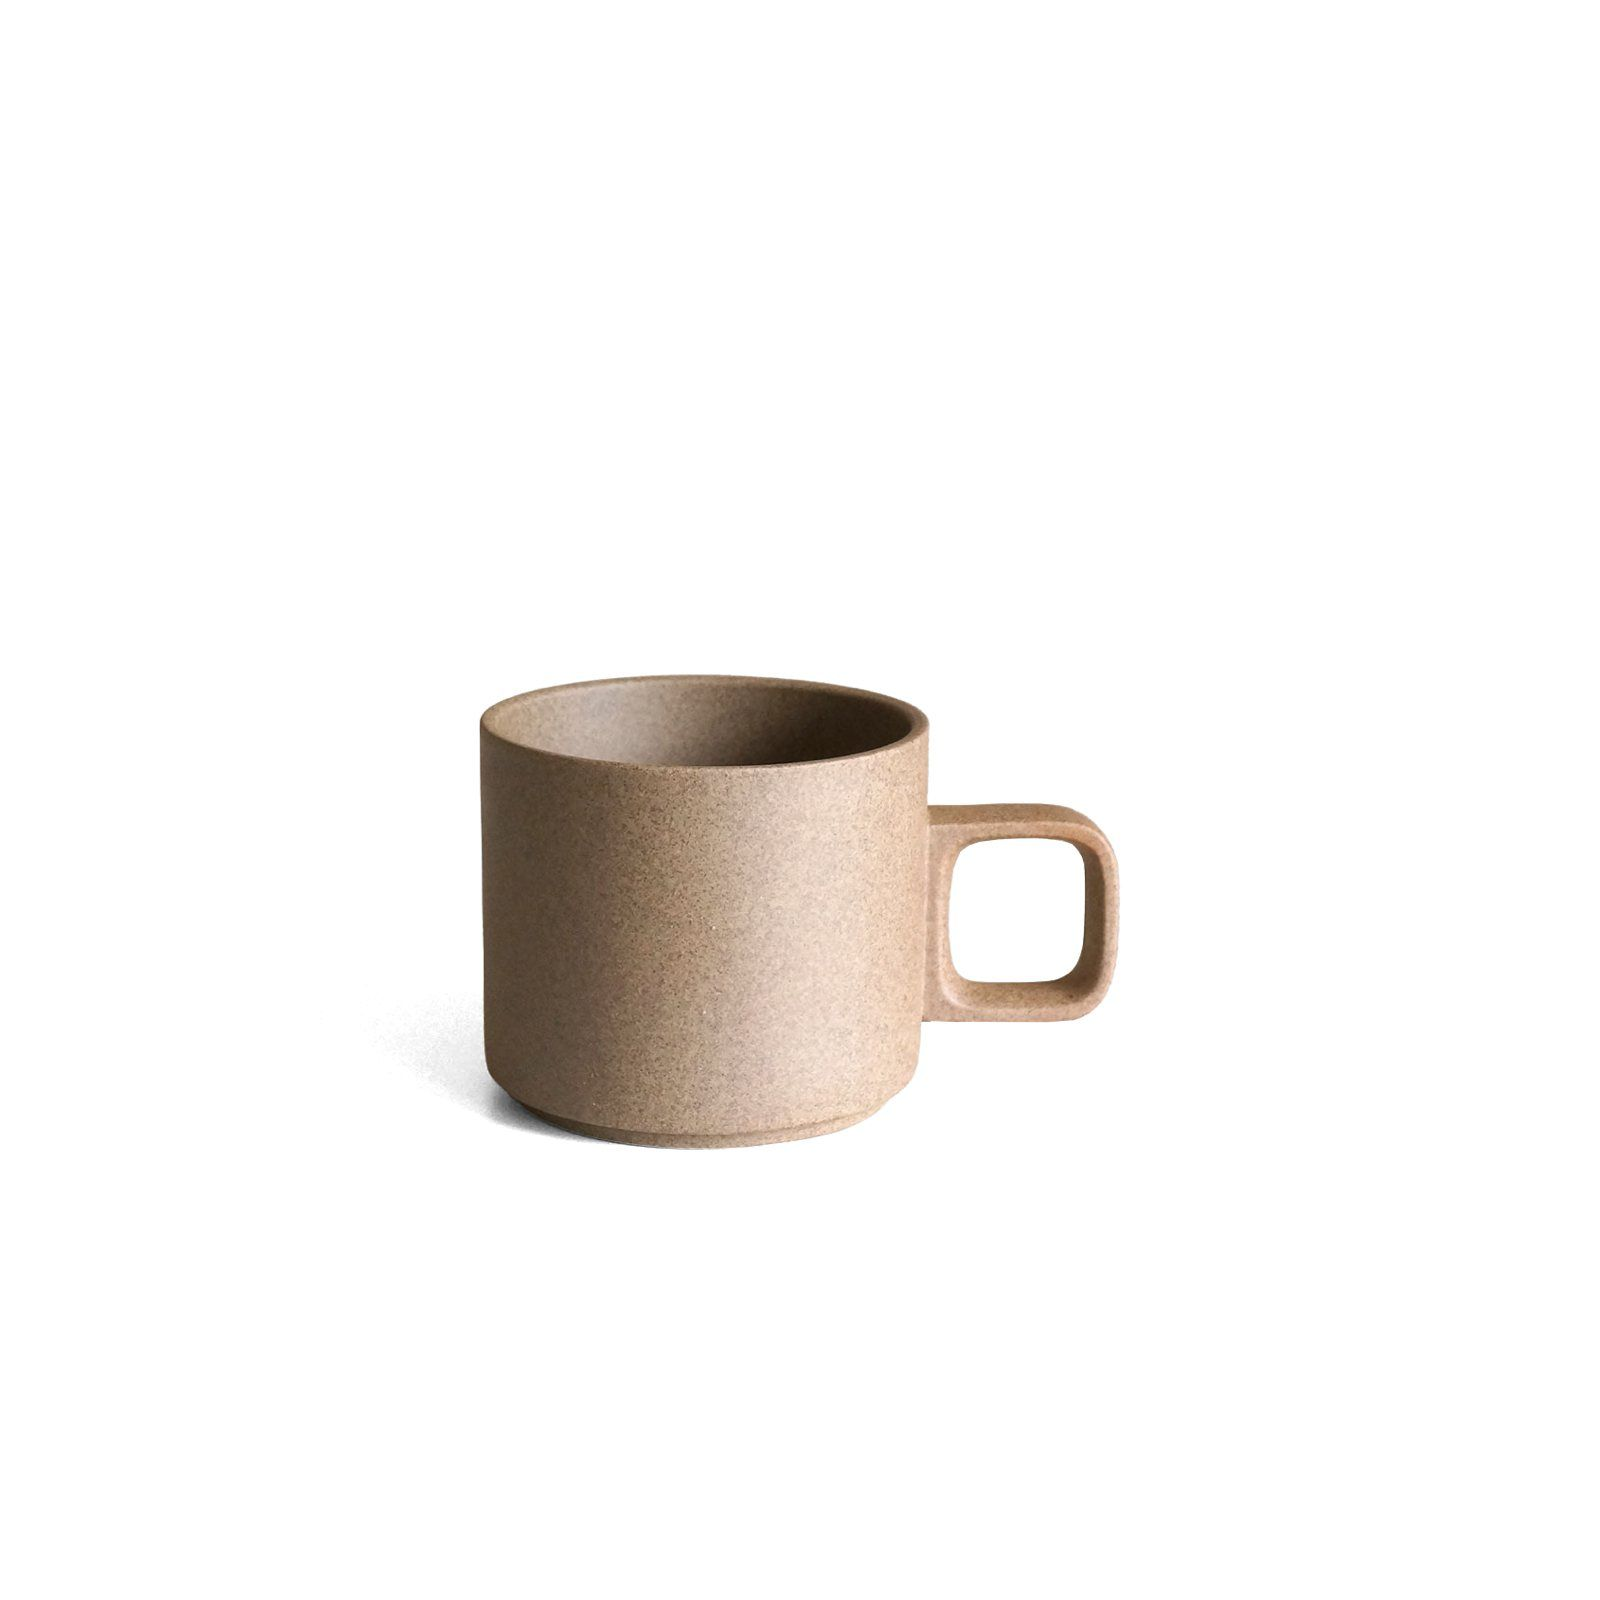 Mug Cup (natural, S) by Hasani Porcelain. | Kitchen accessories ...